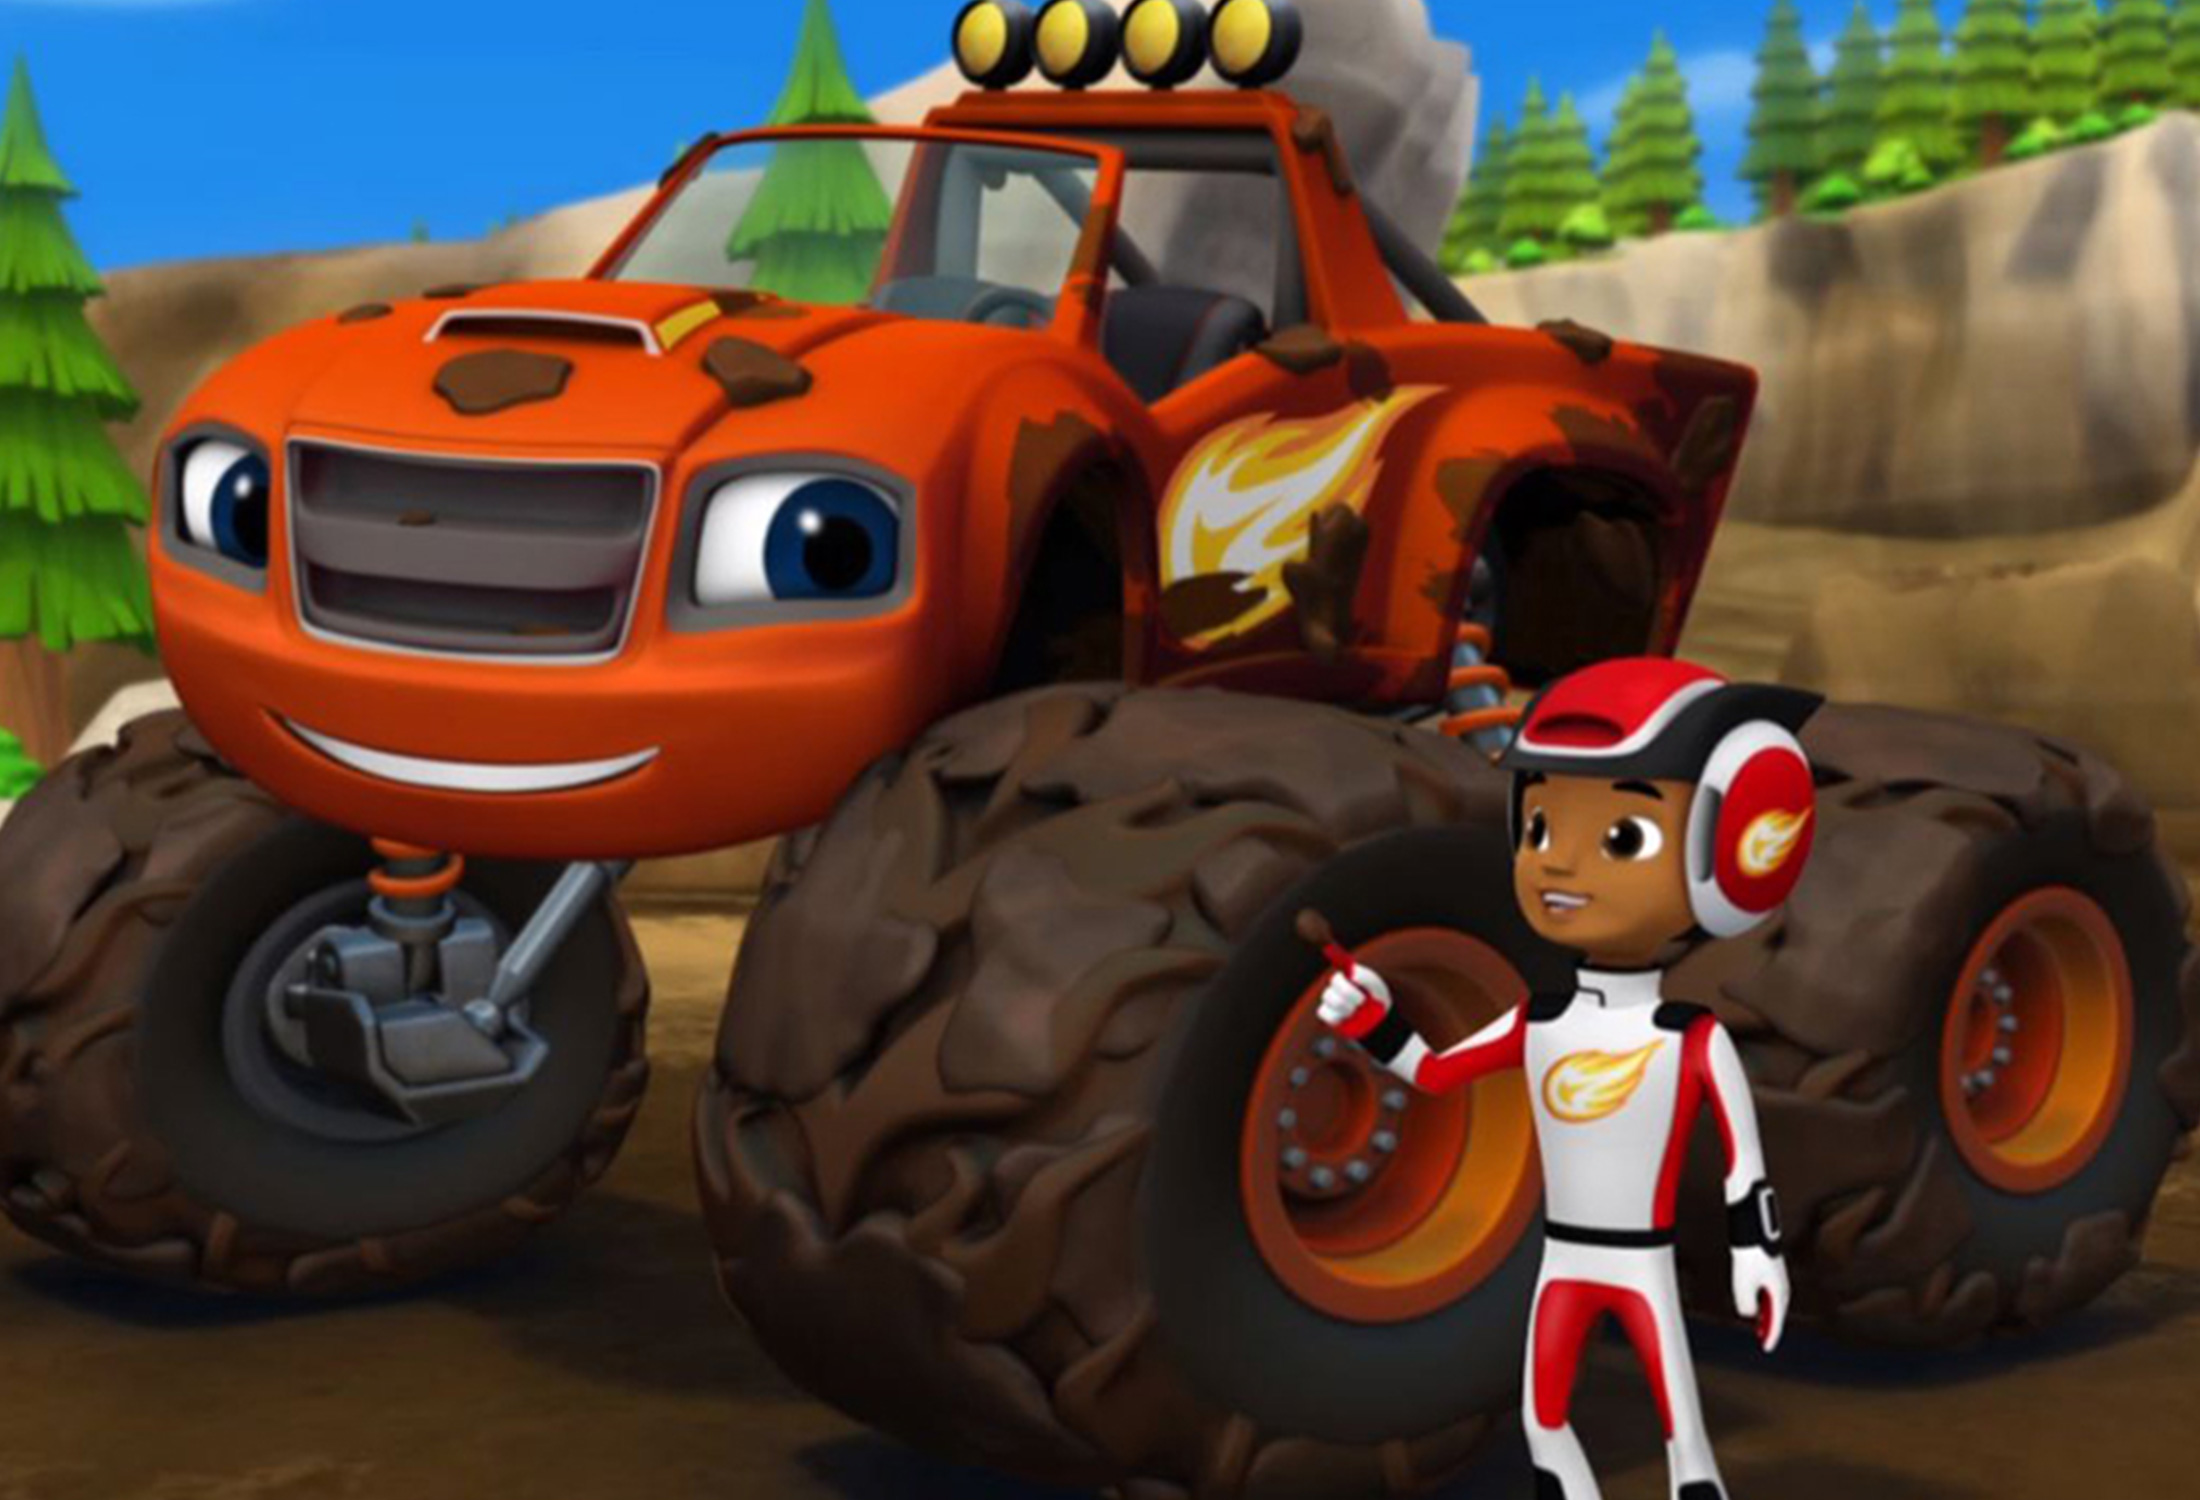 PINTA, RECORTA E COLA COM O BLAZE E AS MONSTER MACHINES